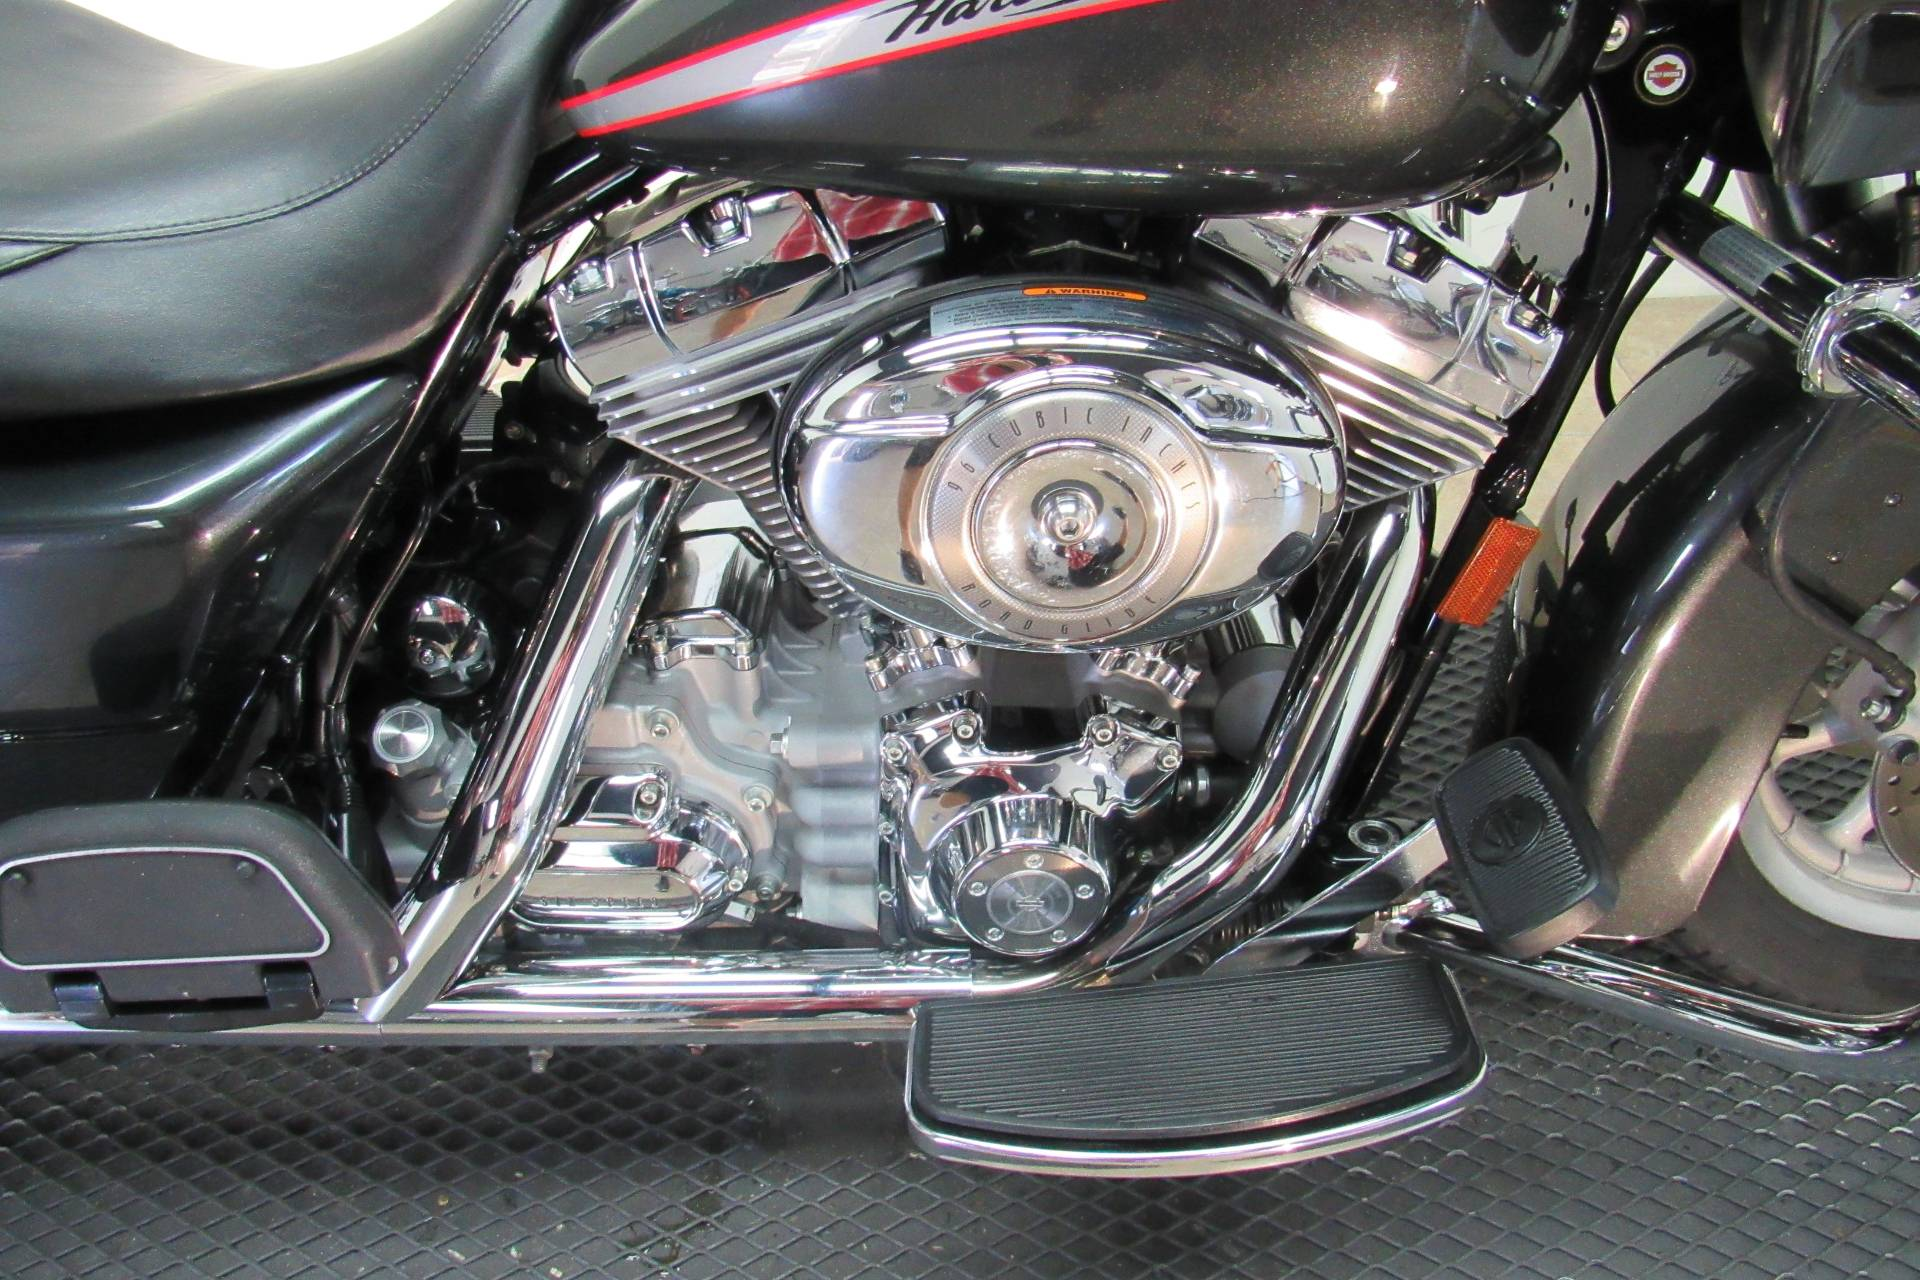 2007 Harley-Davidson Road Glide® in Temecula, California - Photo 6